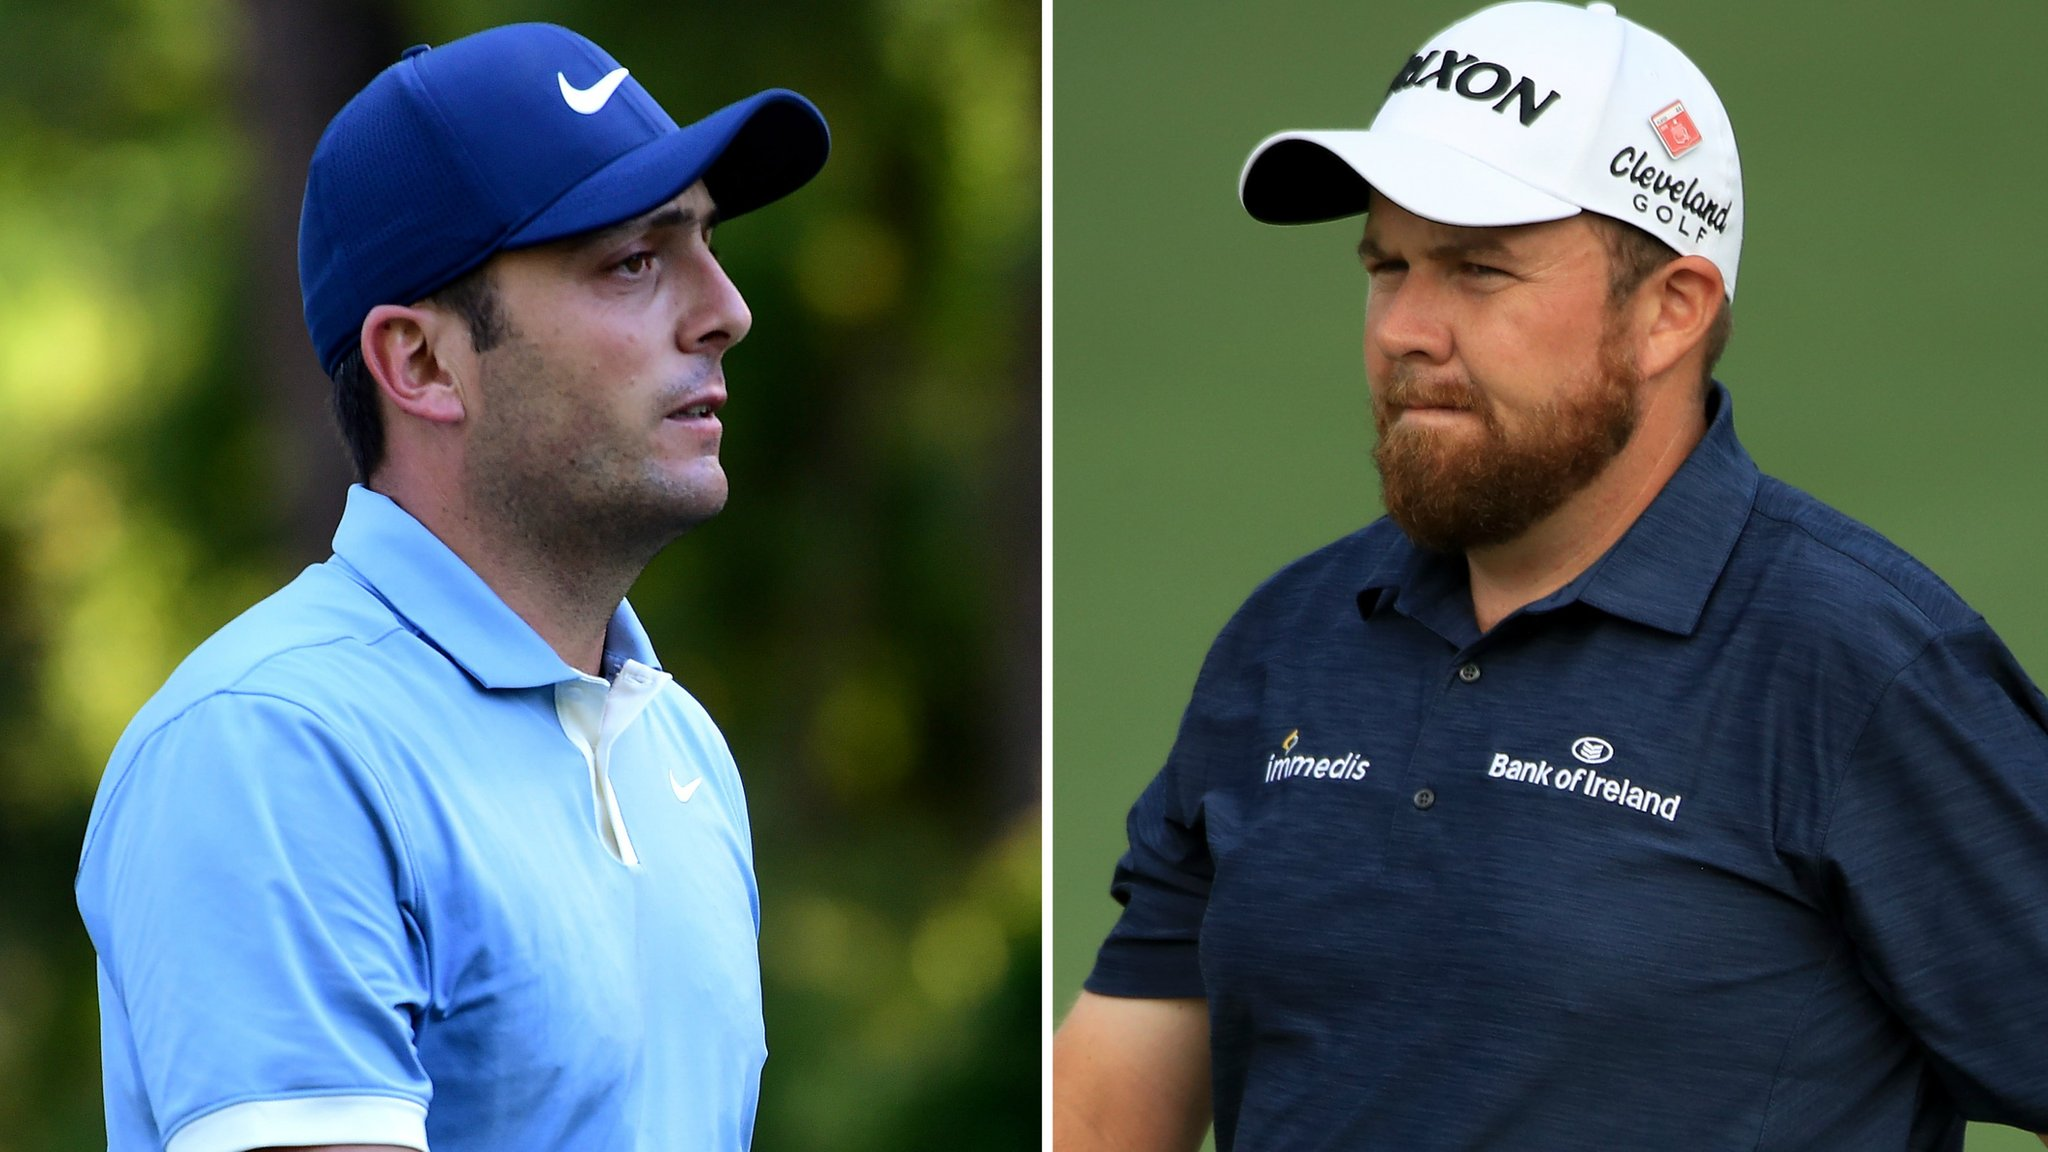 RBC Heritage: Francesco Molinari struggles as Shane Lowry takes the clubhouse lead